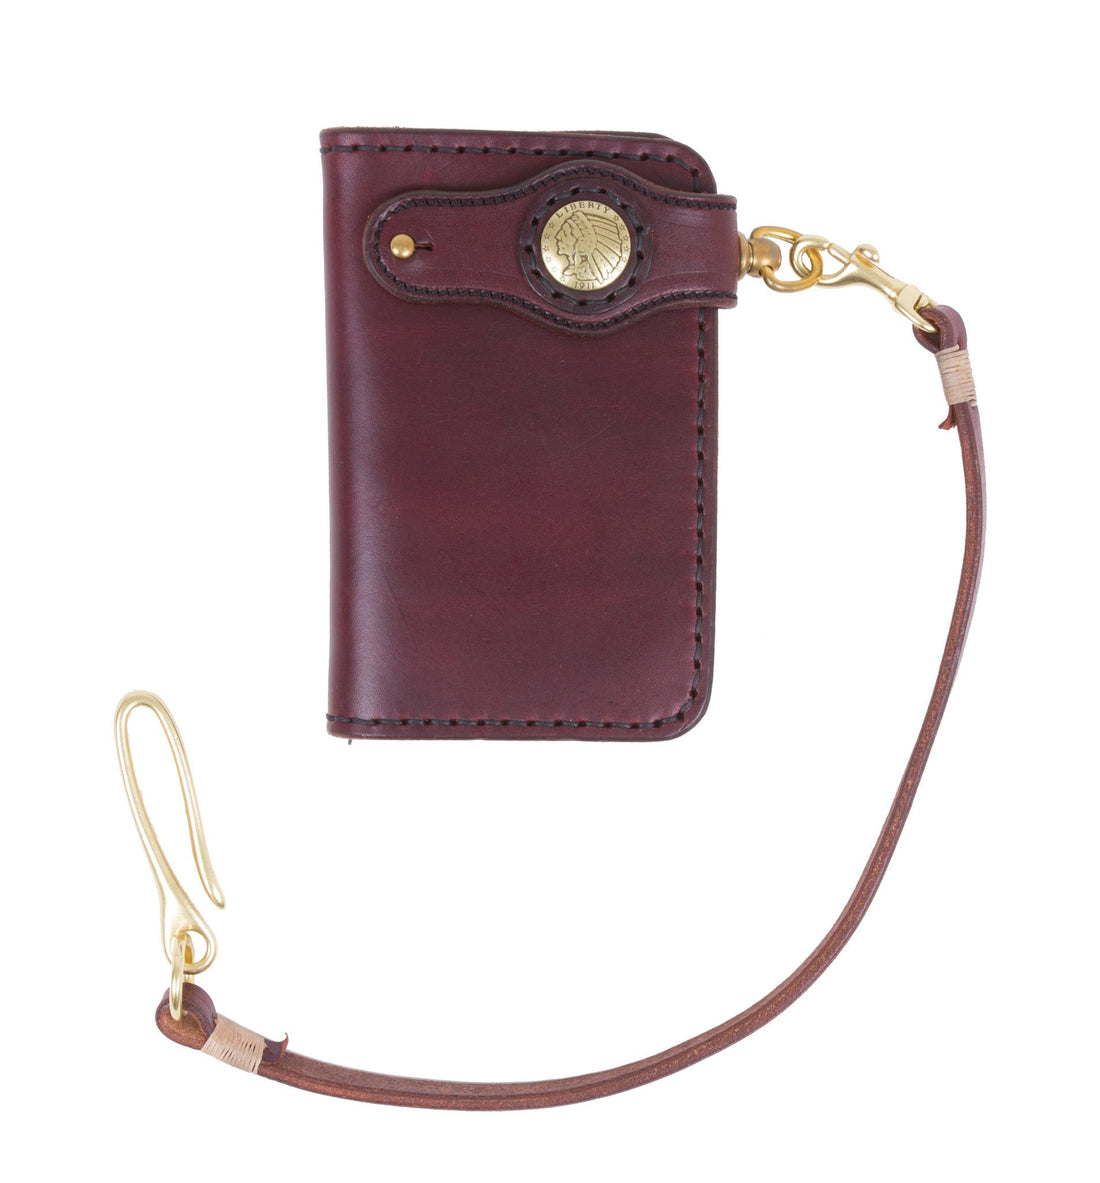 Cult Classic Leather American Mid Wallet, Brown w/strap - Accessories: Wallets - Iron and Resin